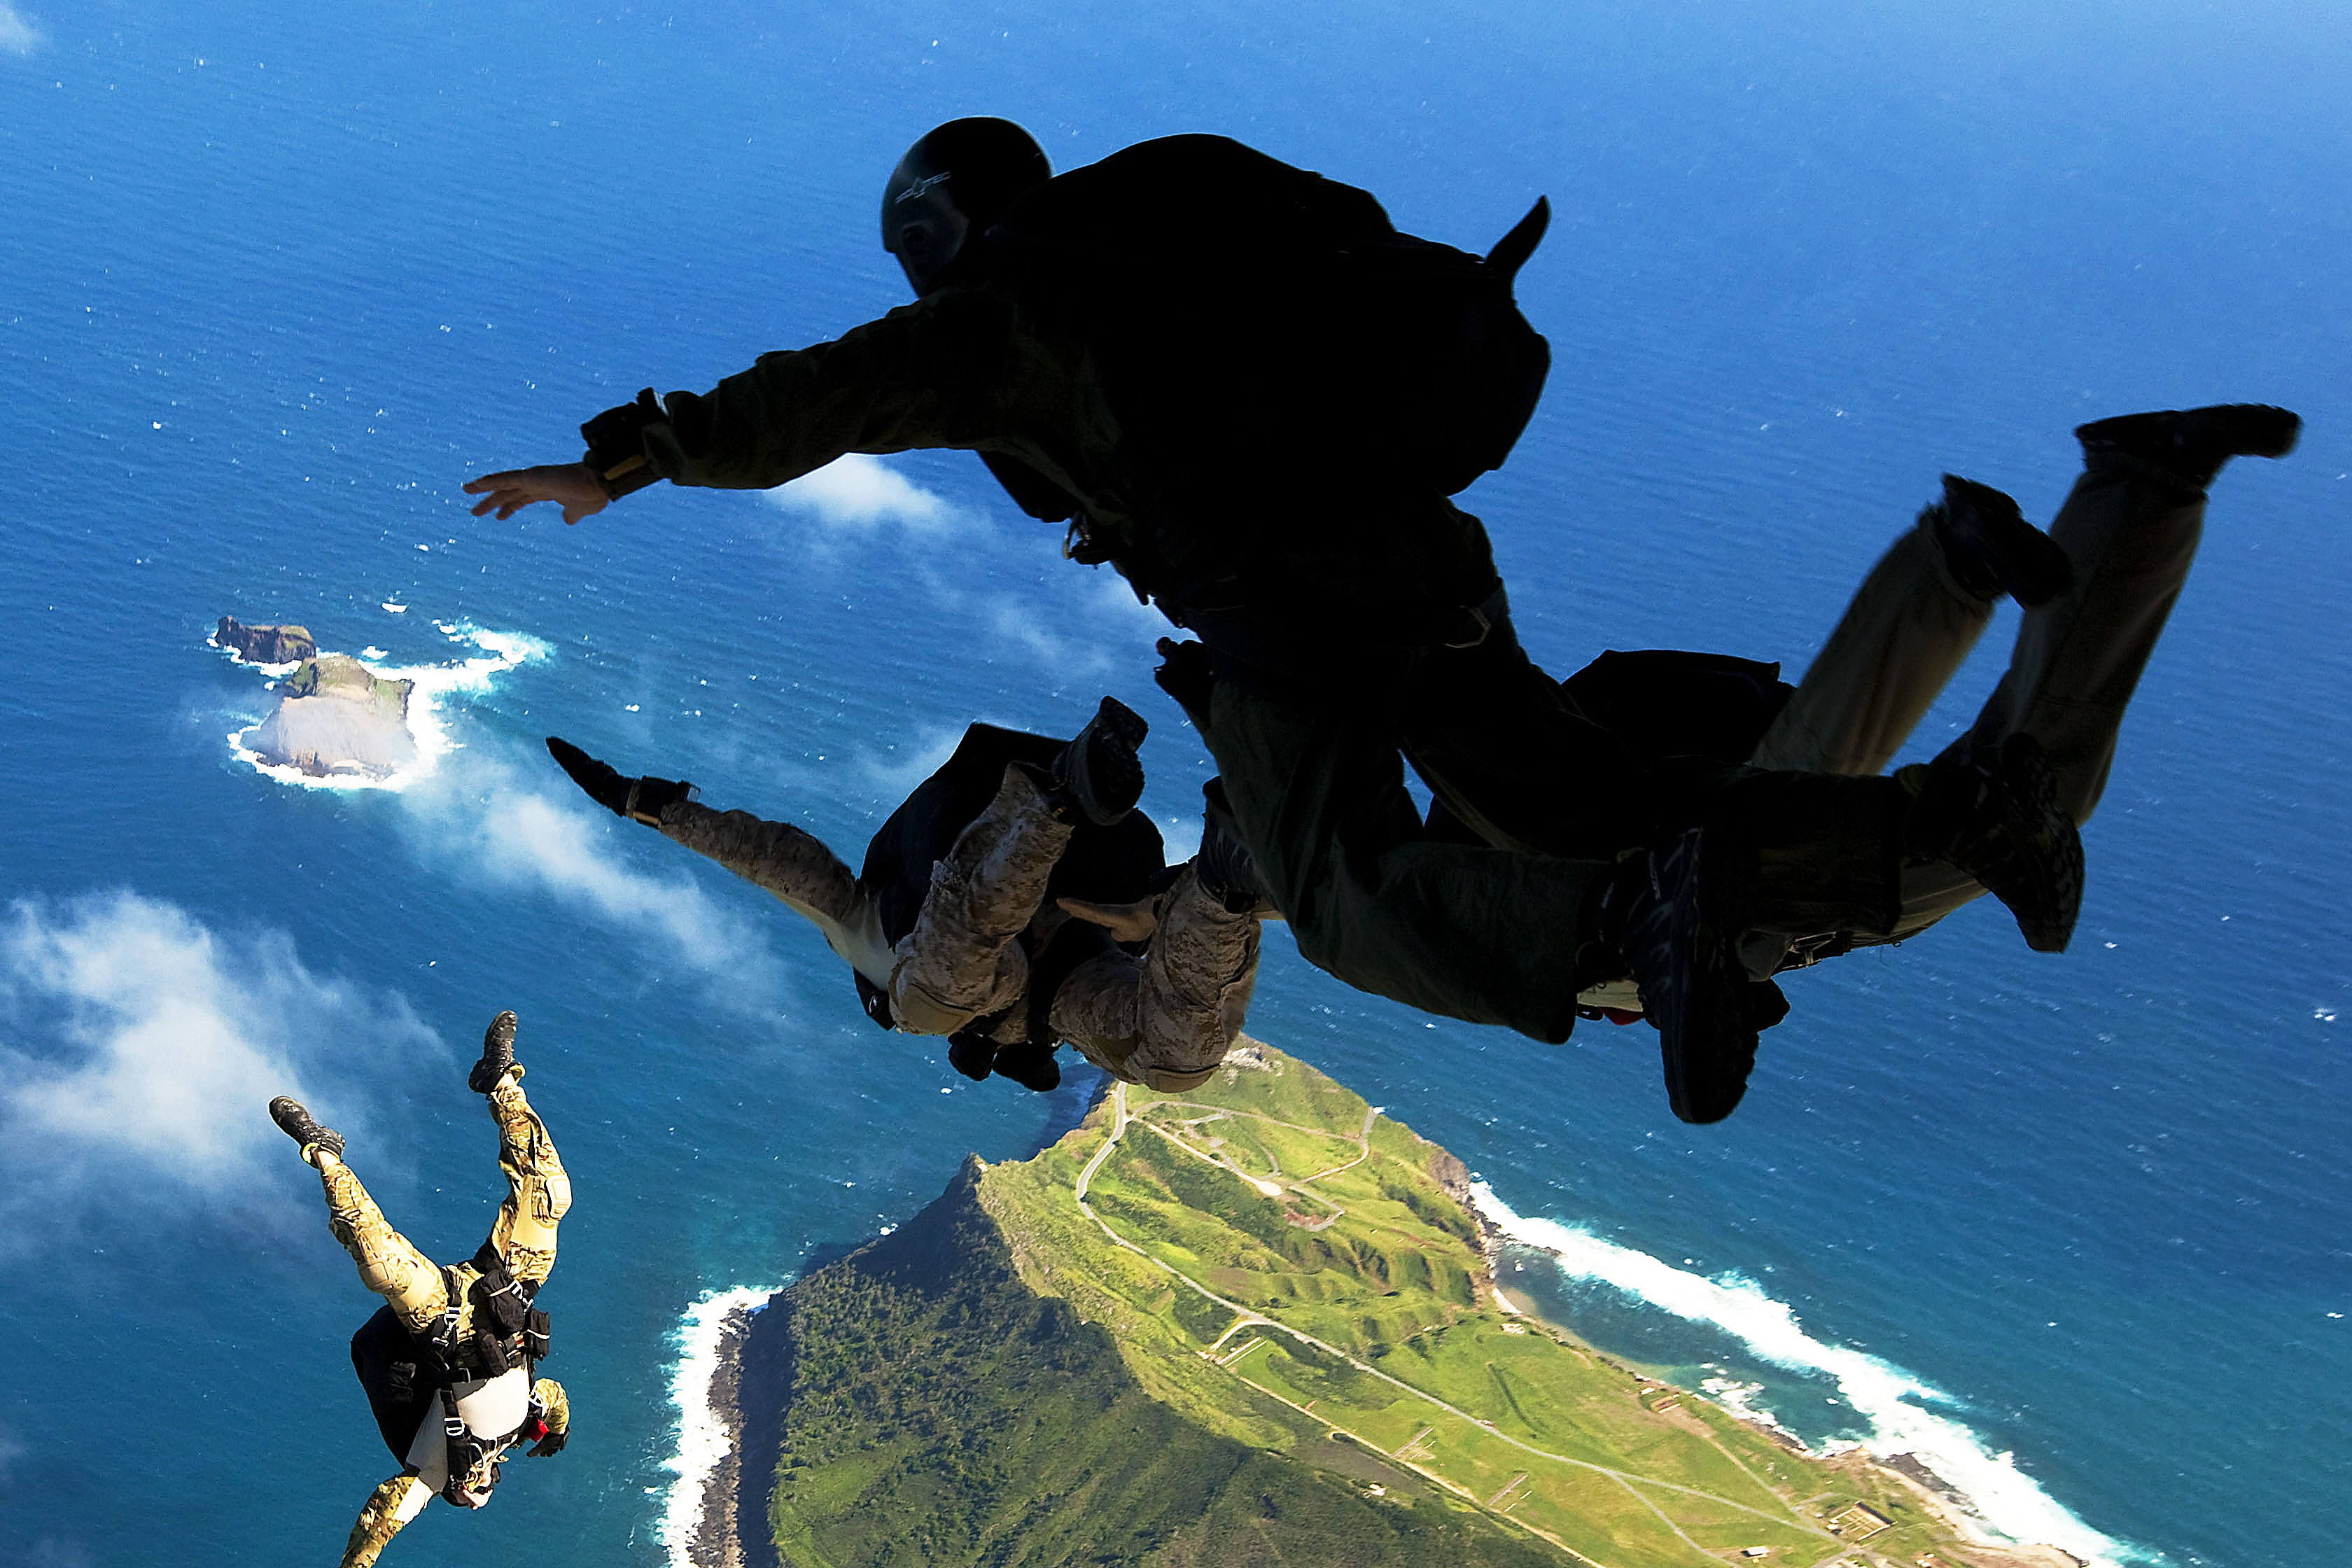 Army paratroopers jumping out of a plane